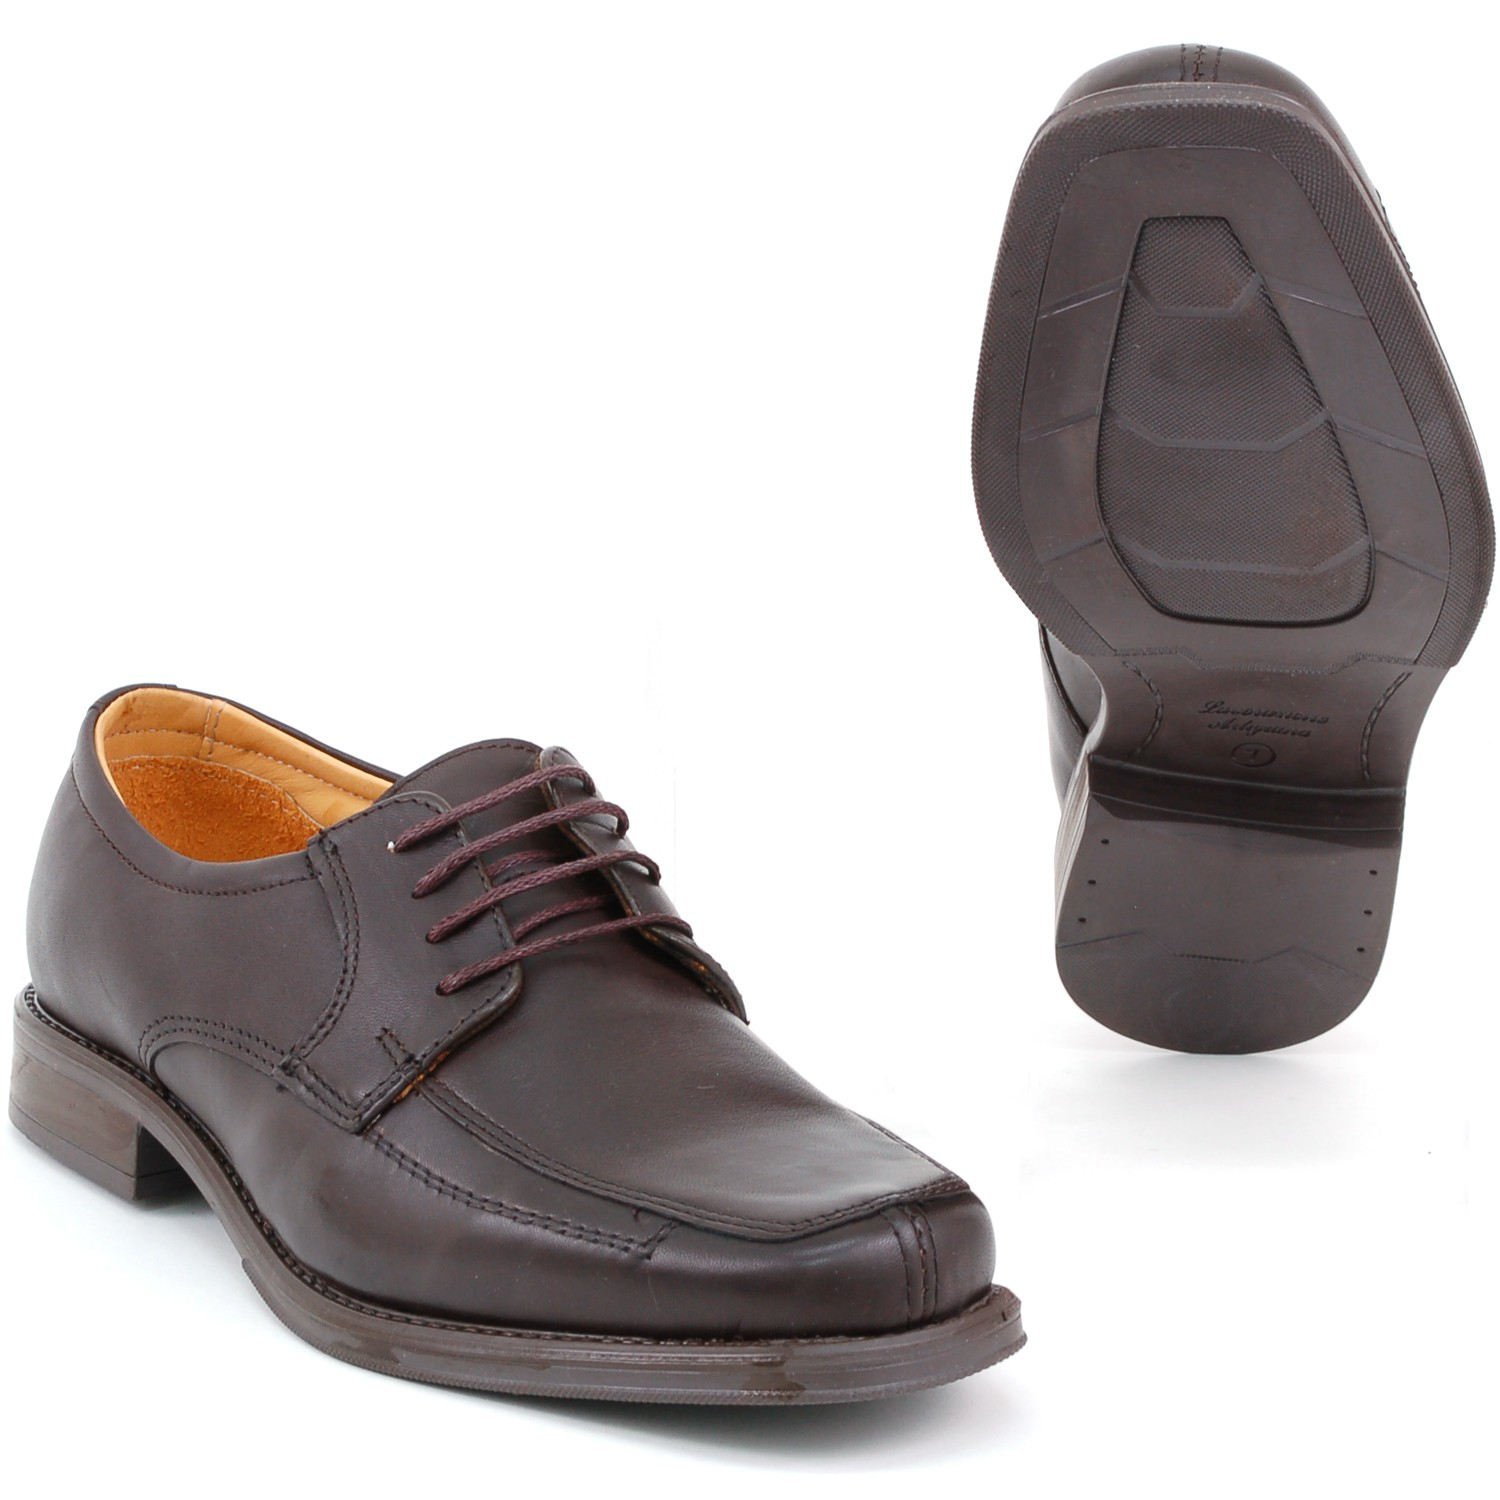 Mens-Lace-Up-Oxfords-Dress-Shoes-Genuine-Leather-Moc-Toe-Giorgio-Brutini-Padded thumbnail 19